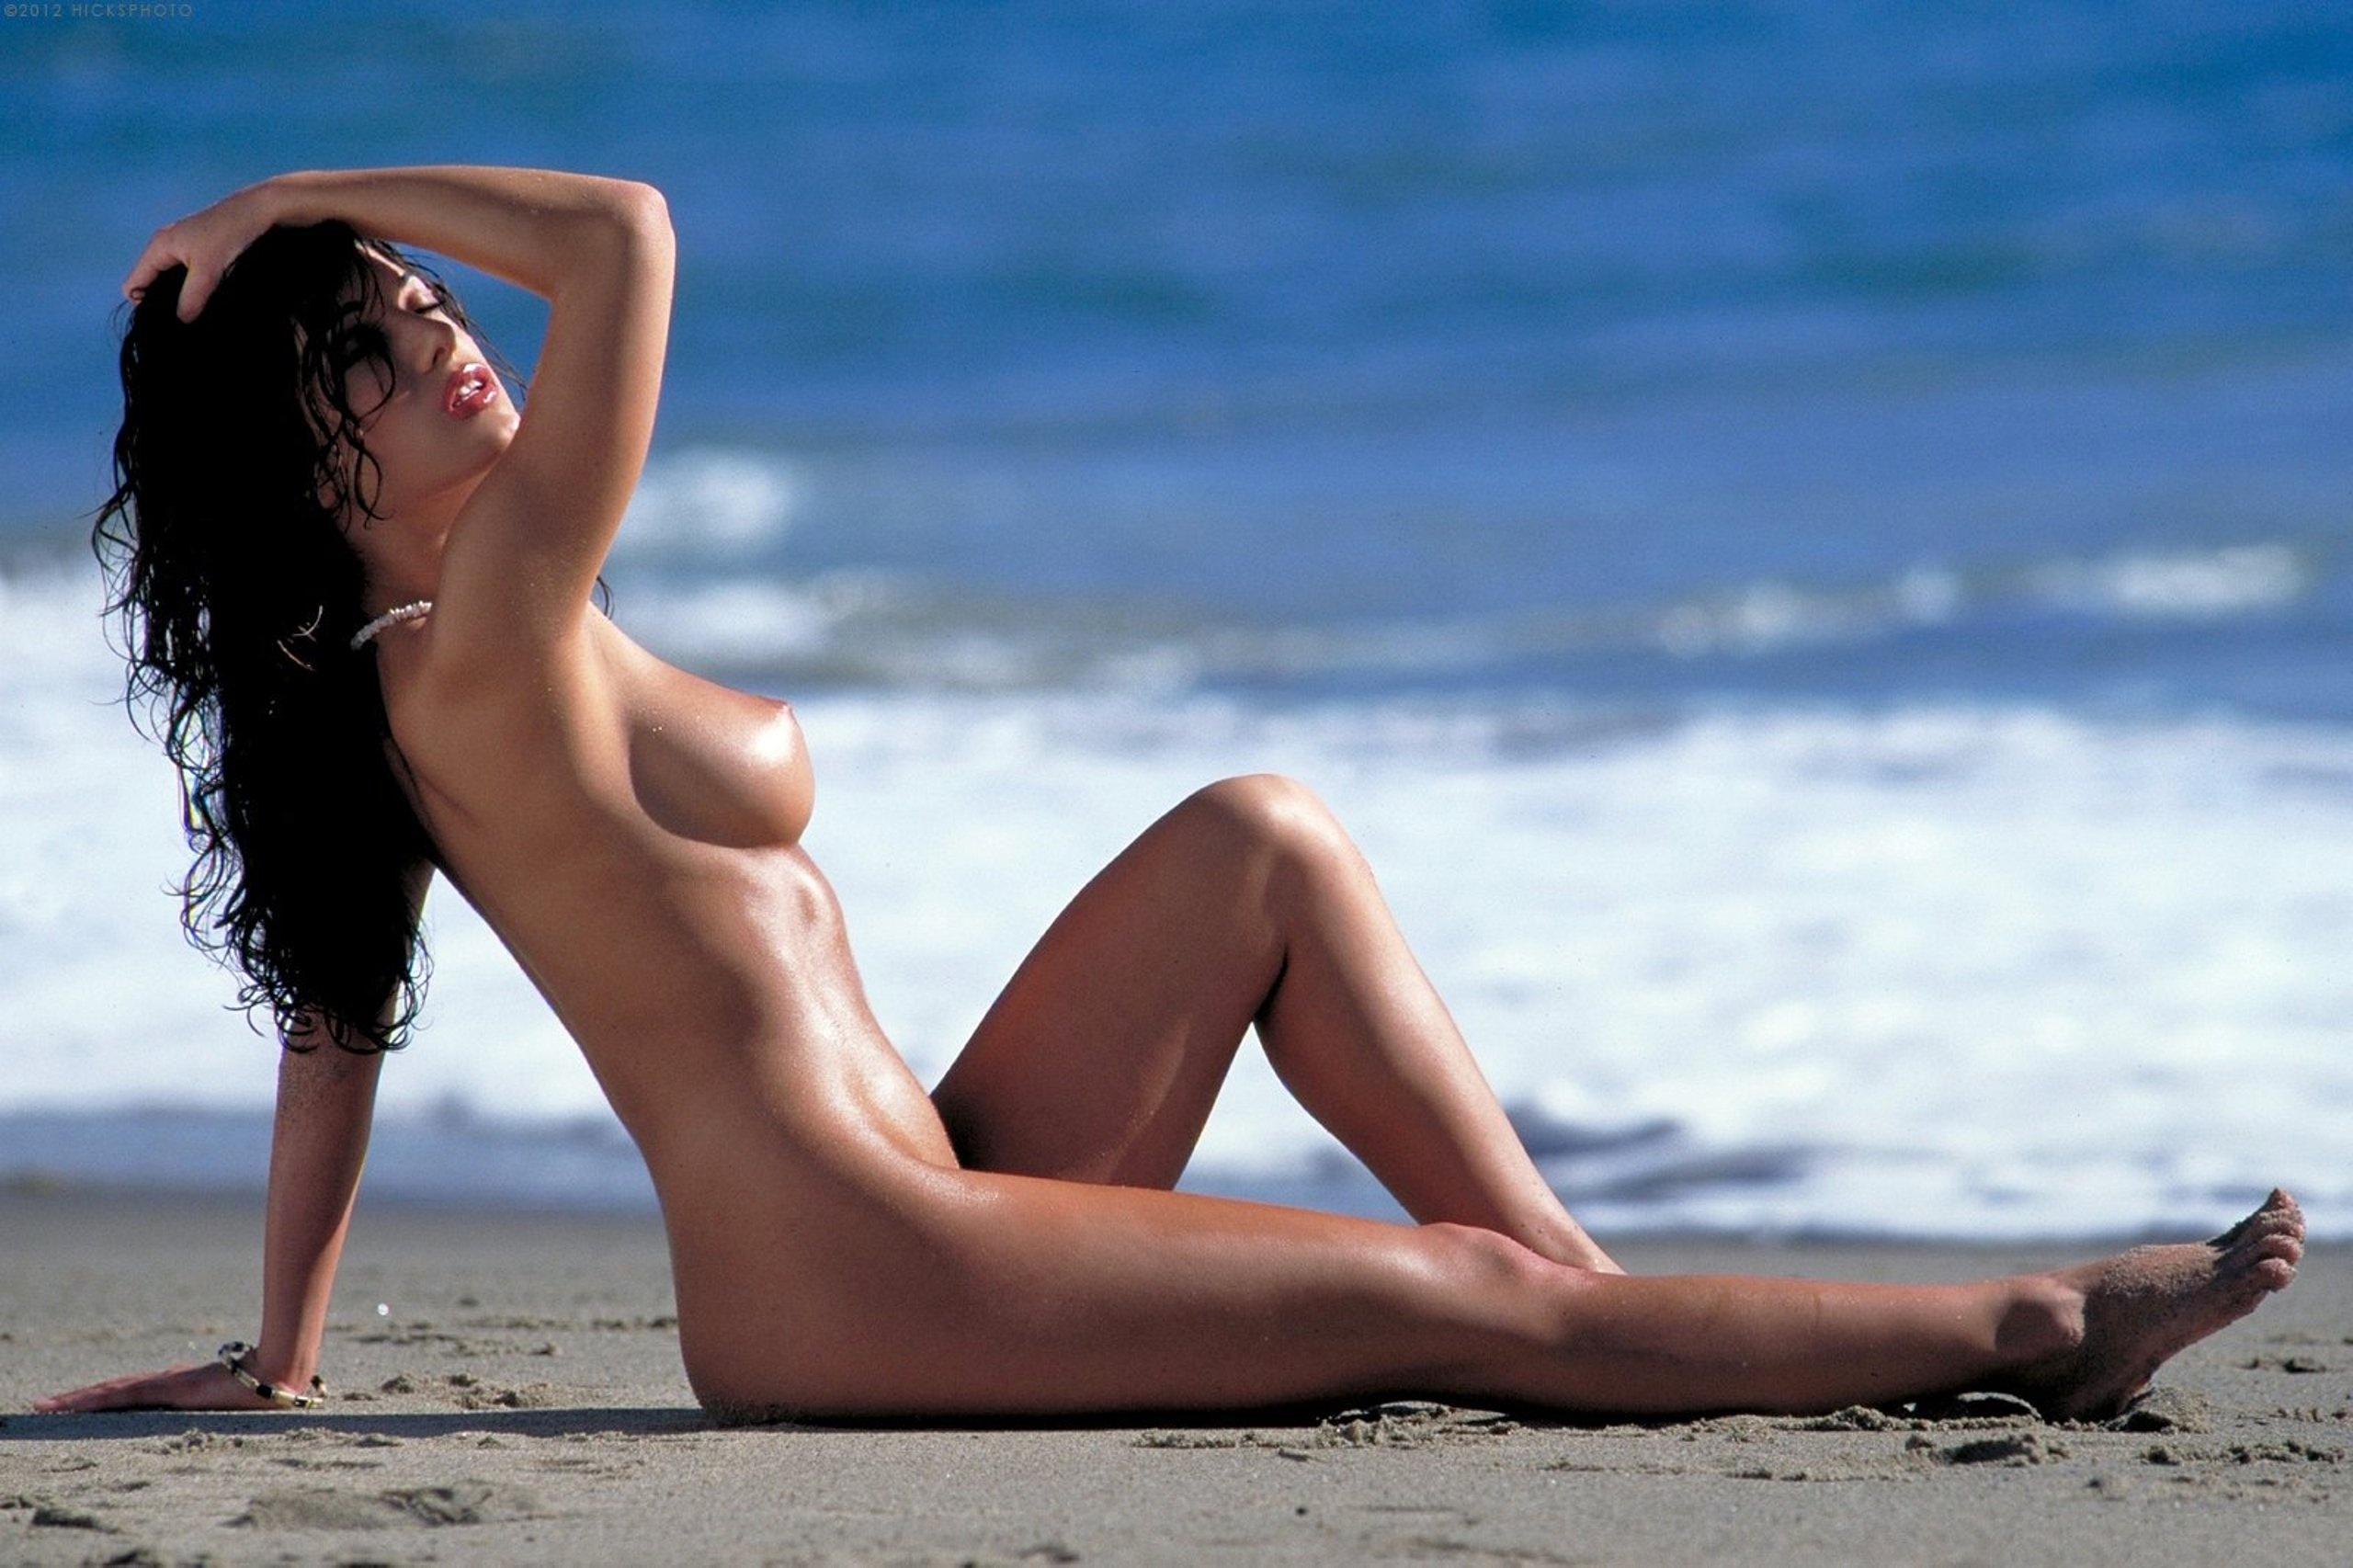 Wallpaper Isabella, Brunette, Sexy Girl, Hot, Delicious -4620